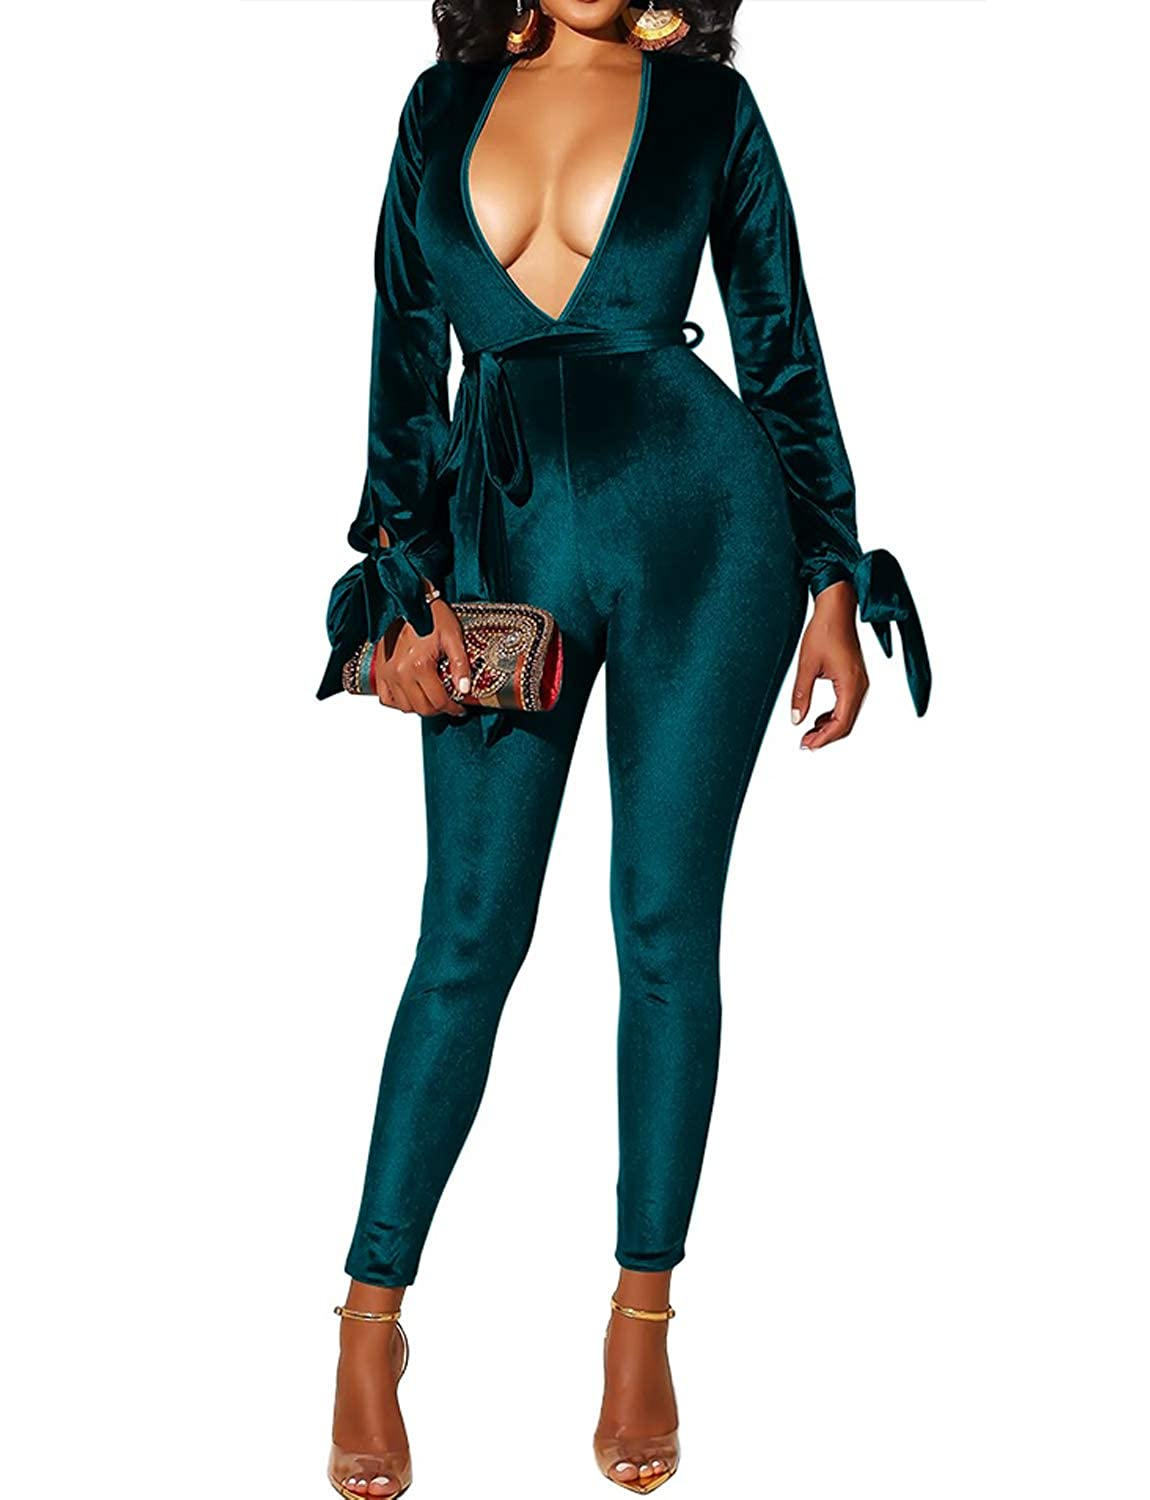 2ab6c11916 Amazon.com  VWIWV Women s Sexy V Neck Long Sleeve Velvet Jumpsuit Romper  Bodycon Belted Party Clubwear  Clothing